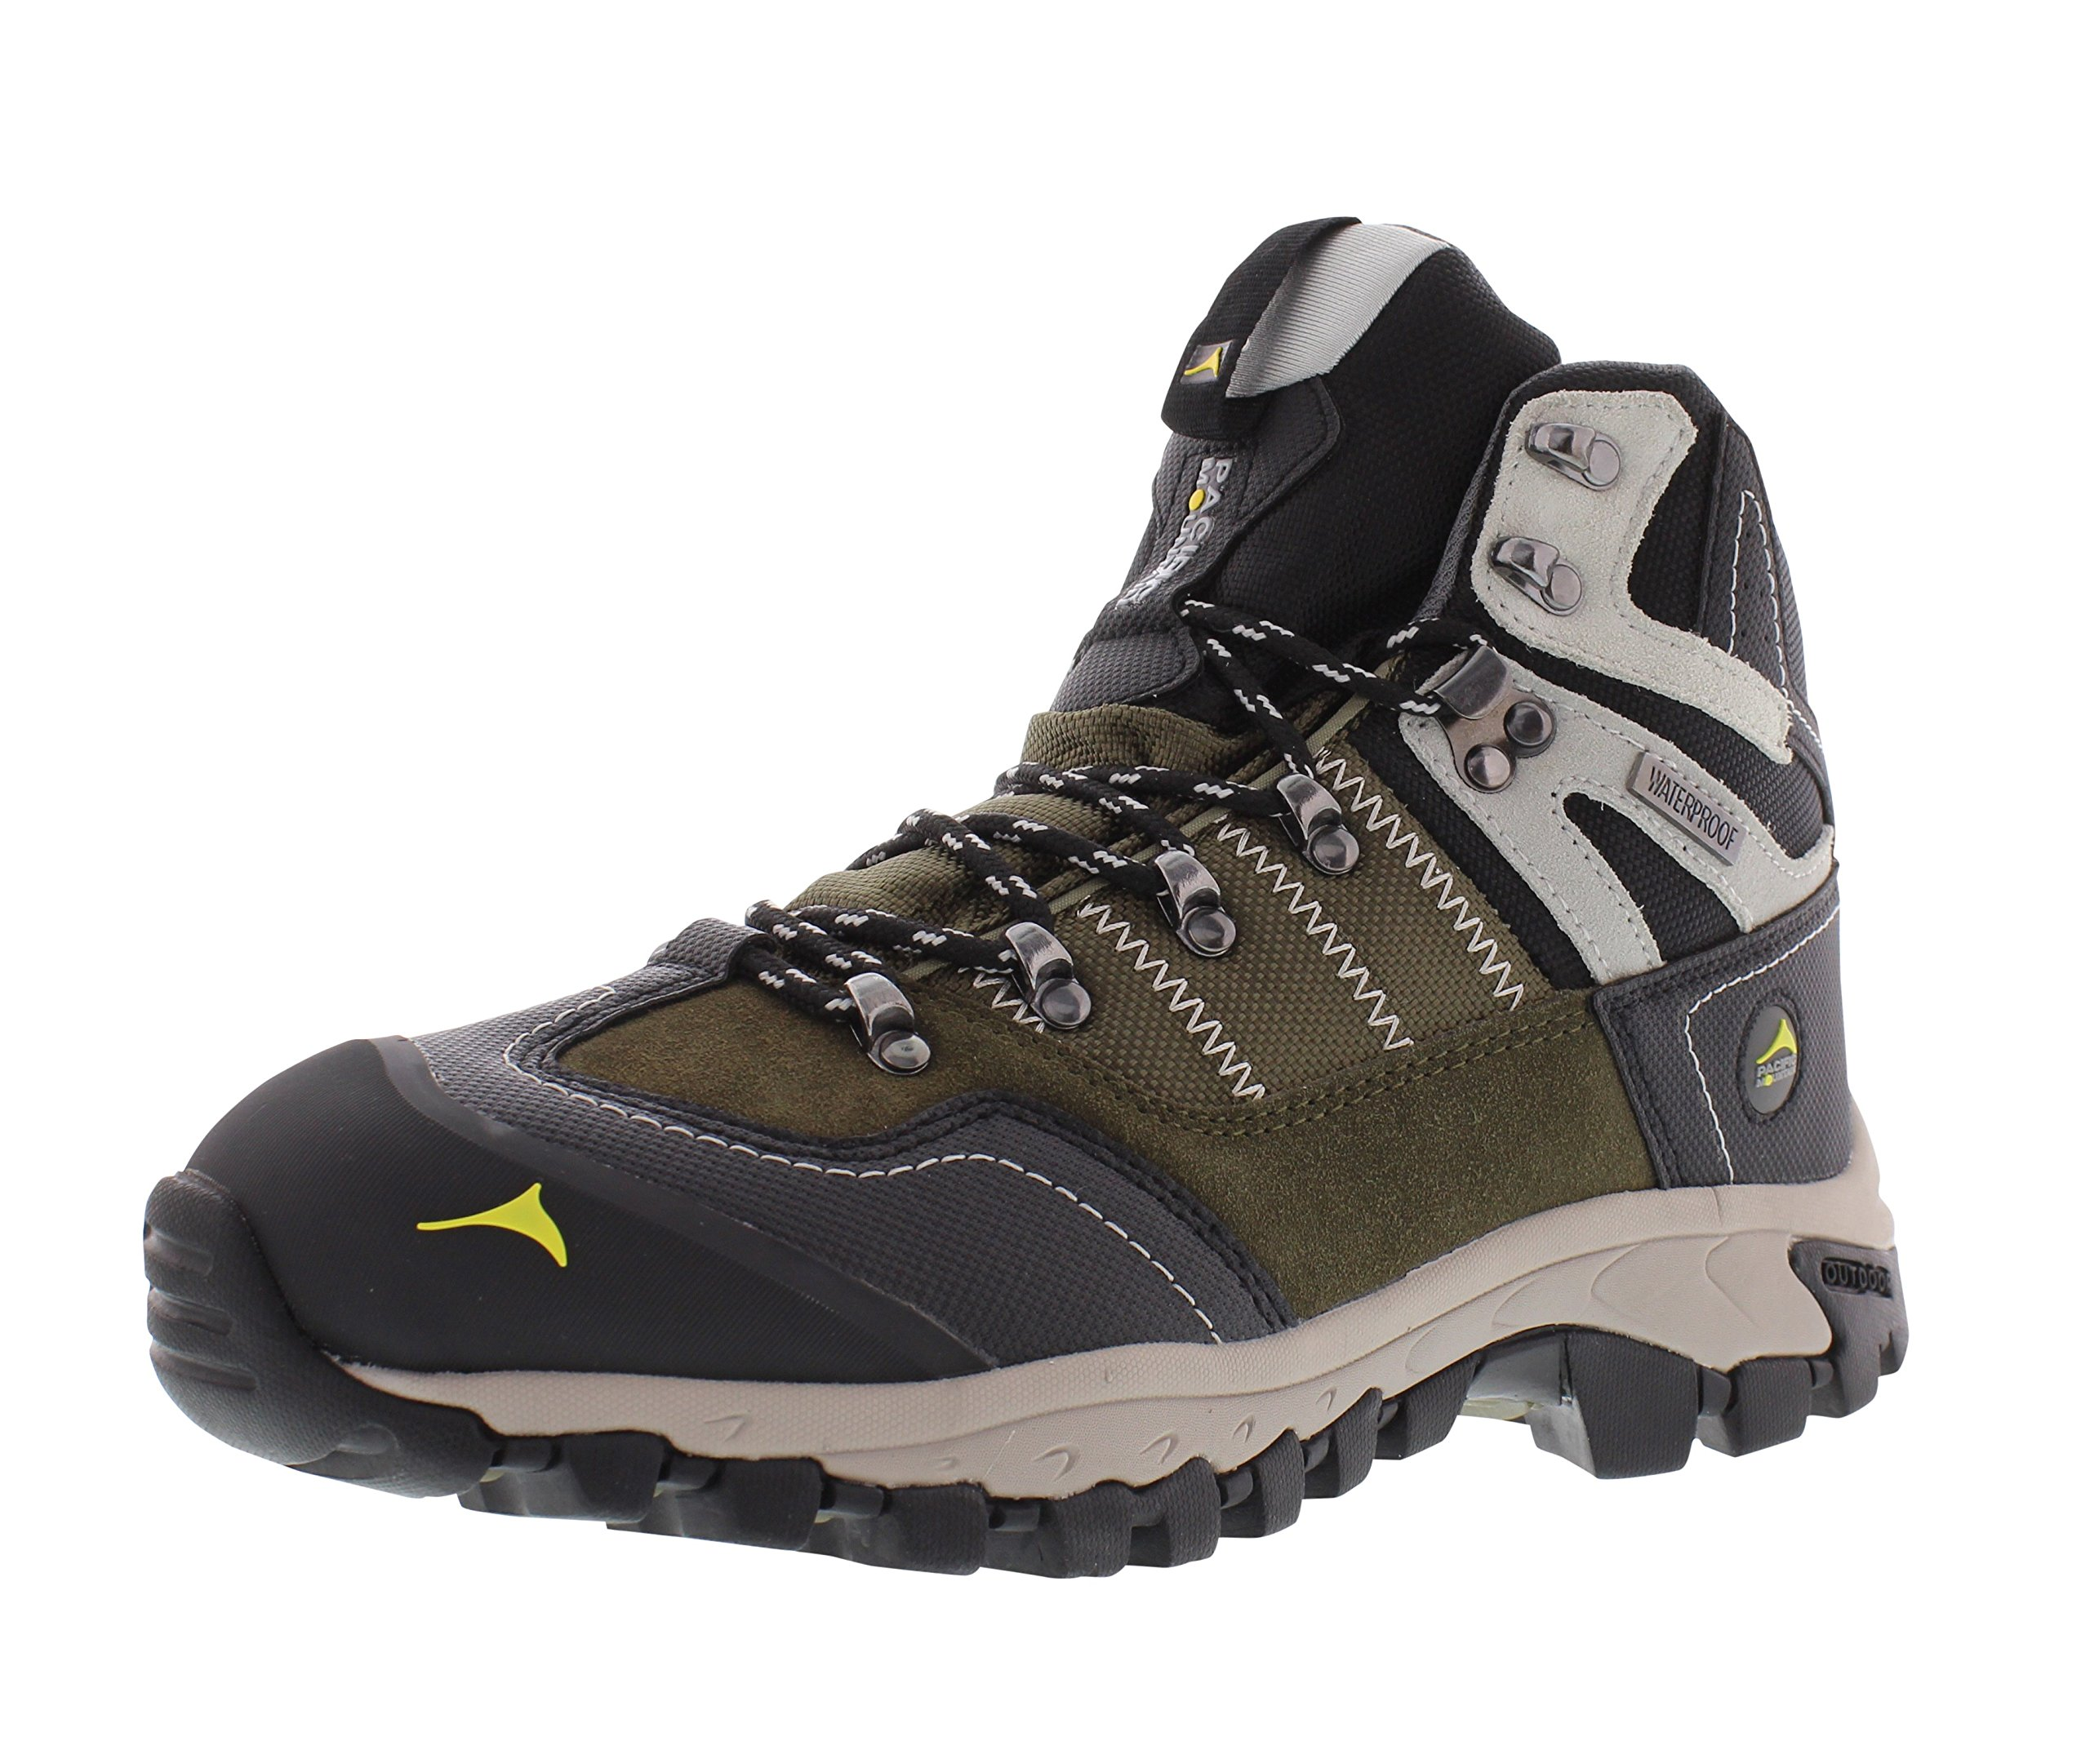 Pacific Mountain Ascend Men's Waterproof Hiking Backpacking Mid-Cut Olive/Black/Cream Boots Size 12